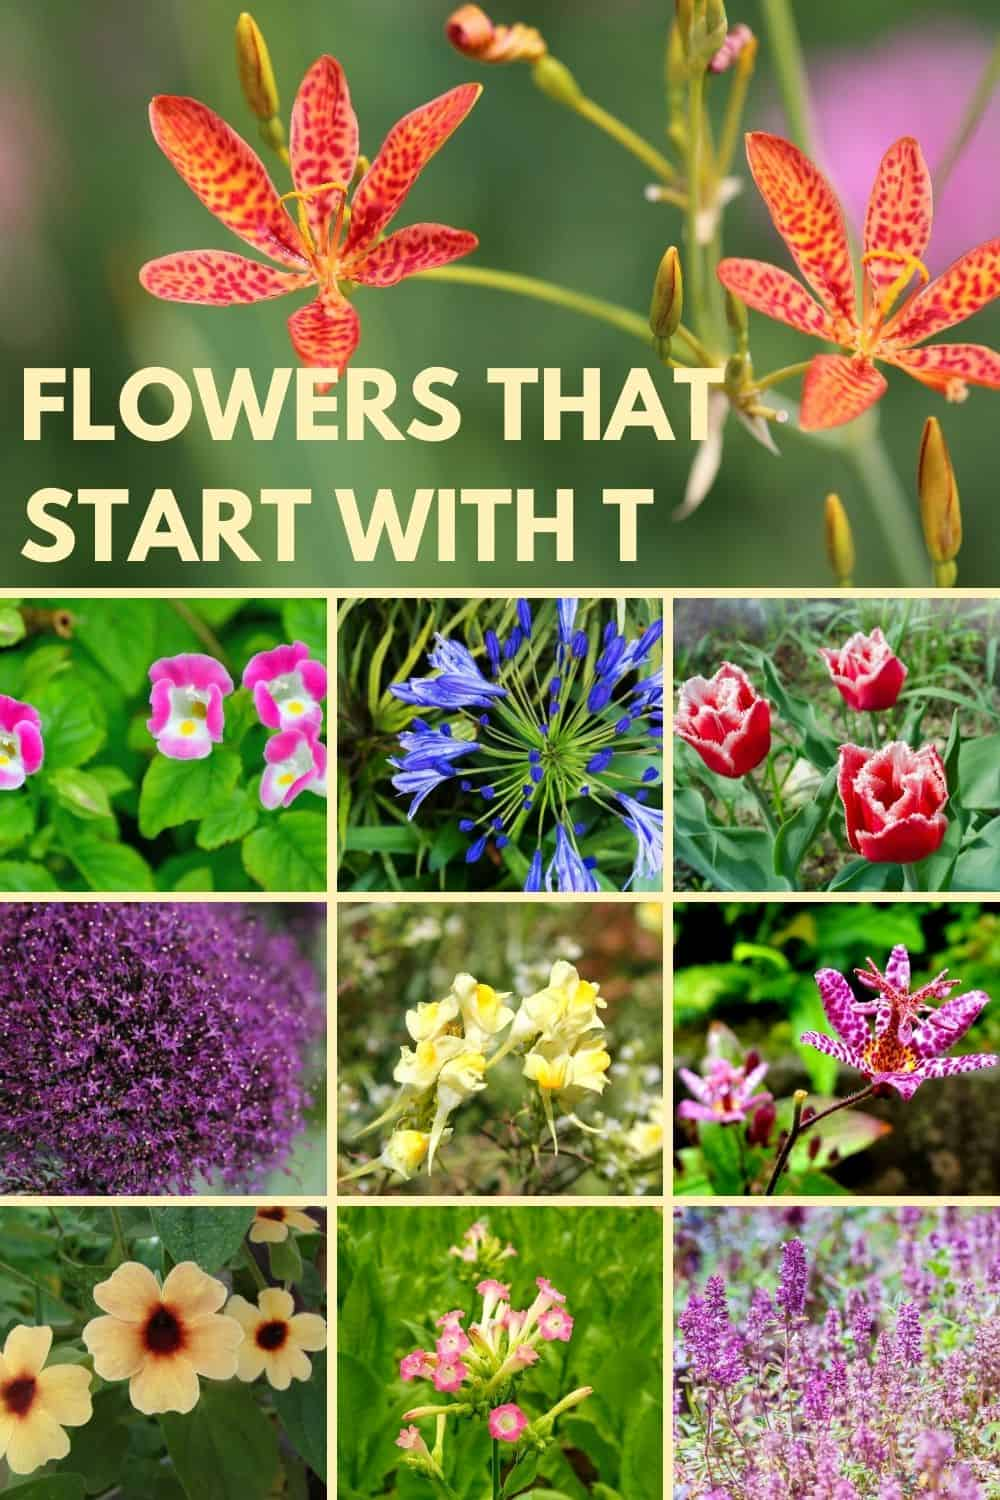 Flowers that start with t